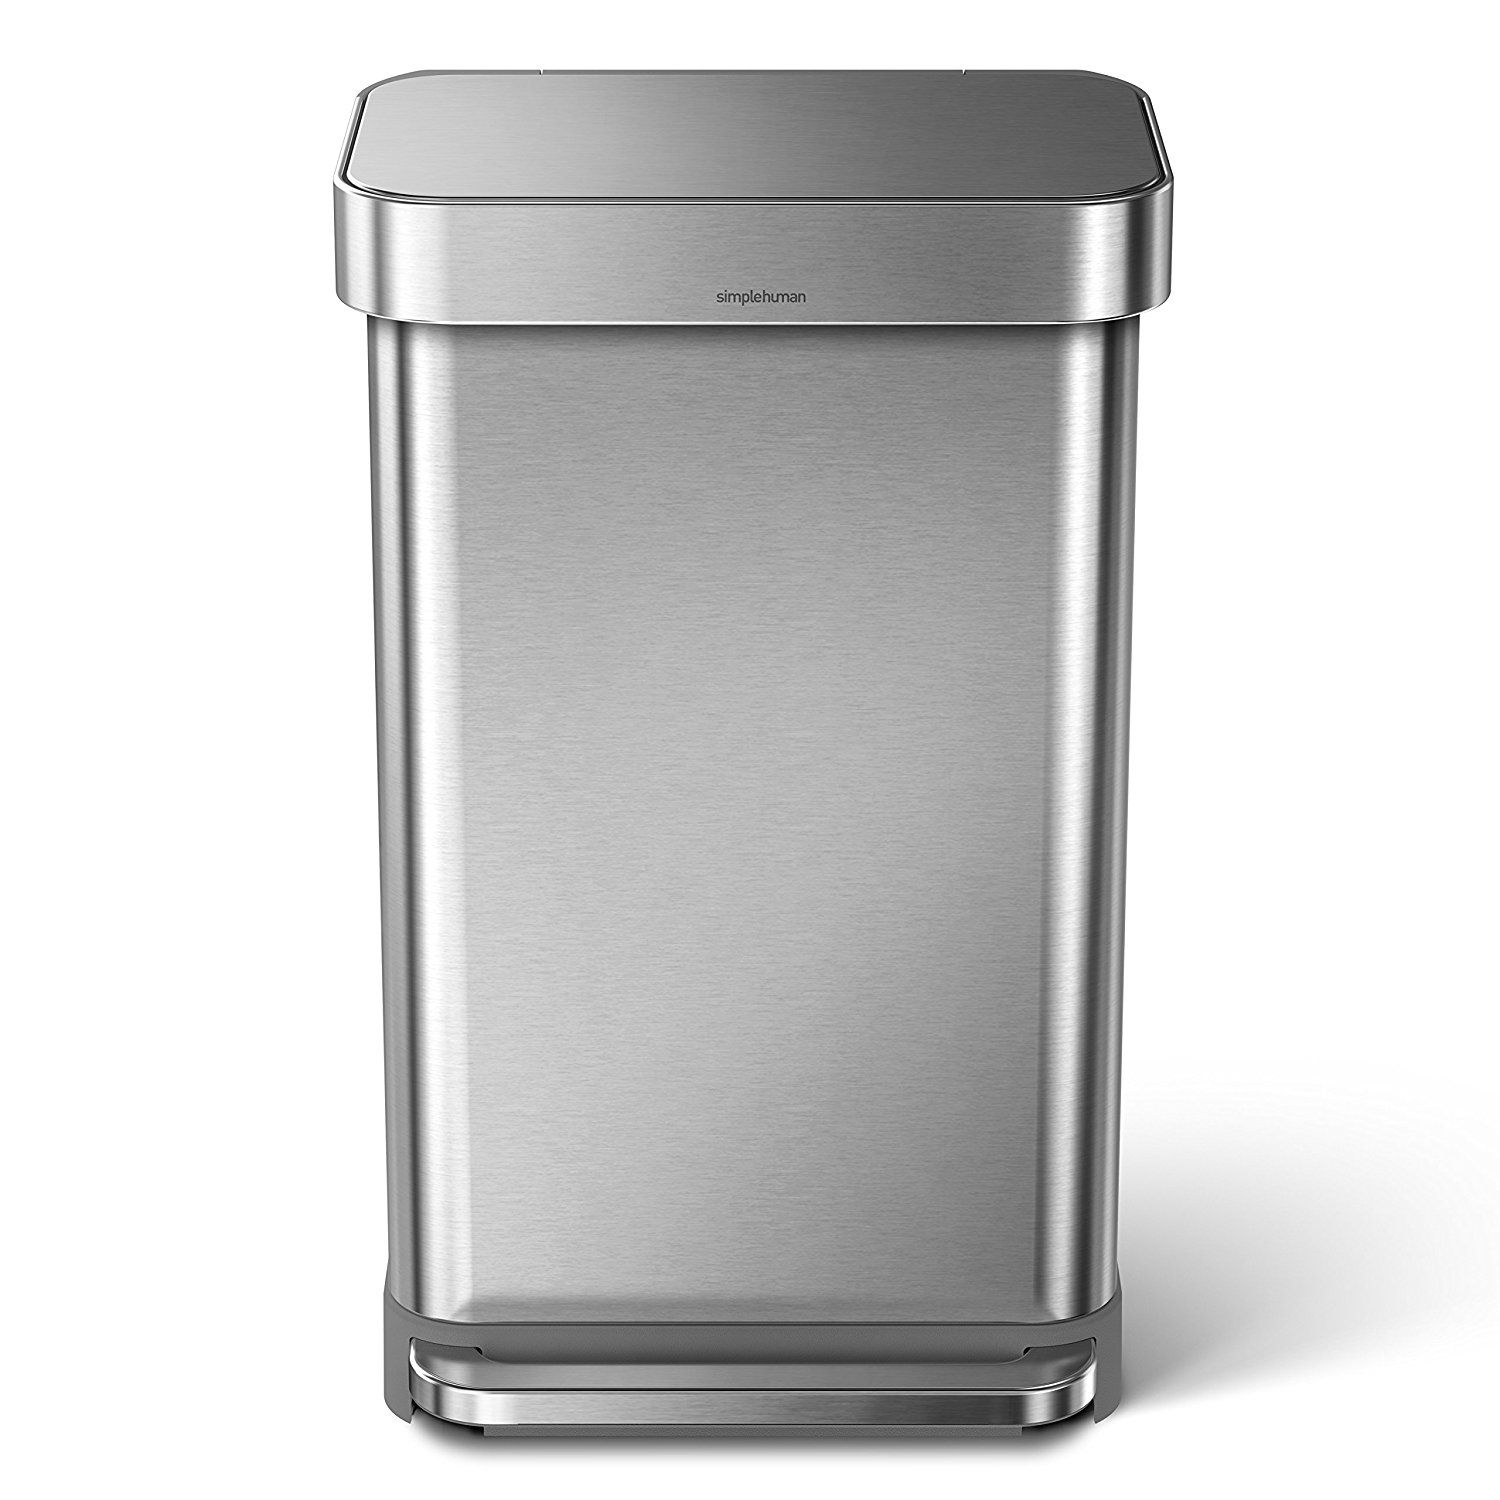 simplehuman kitchen trash can tables with bench 8 best cans of 2019 overall 45 liter 12 gallon stainless steel rectangular step liner pocket